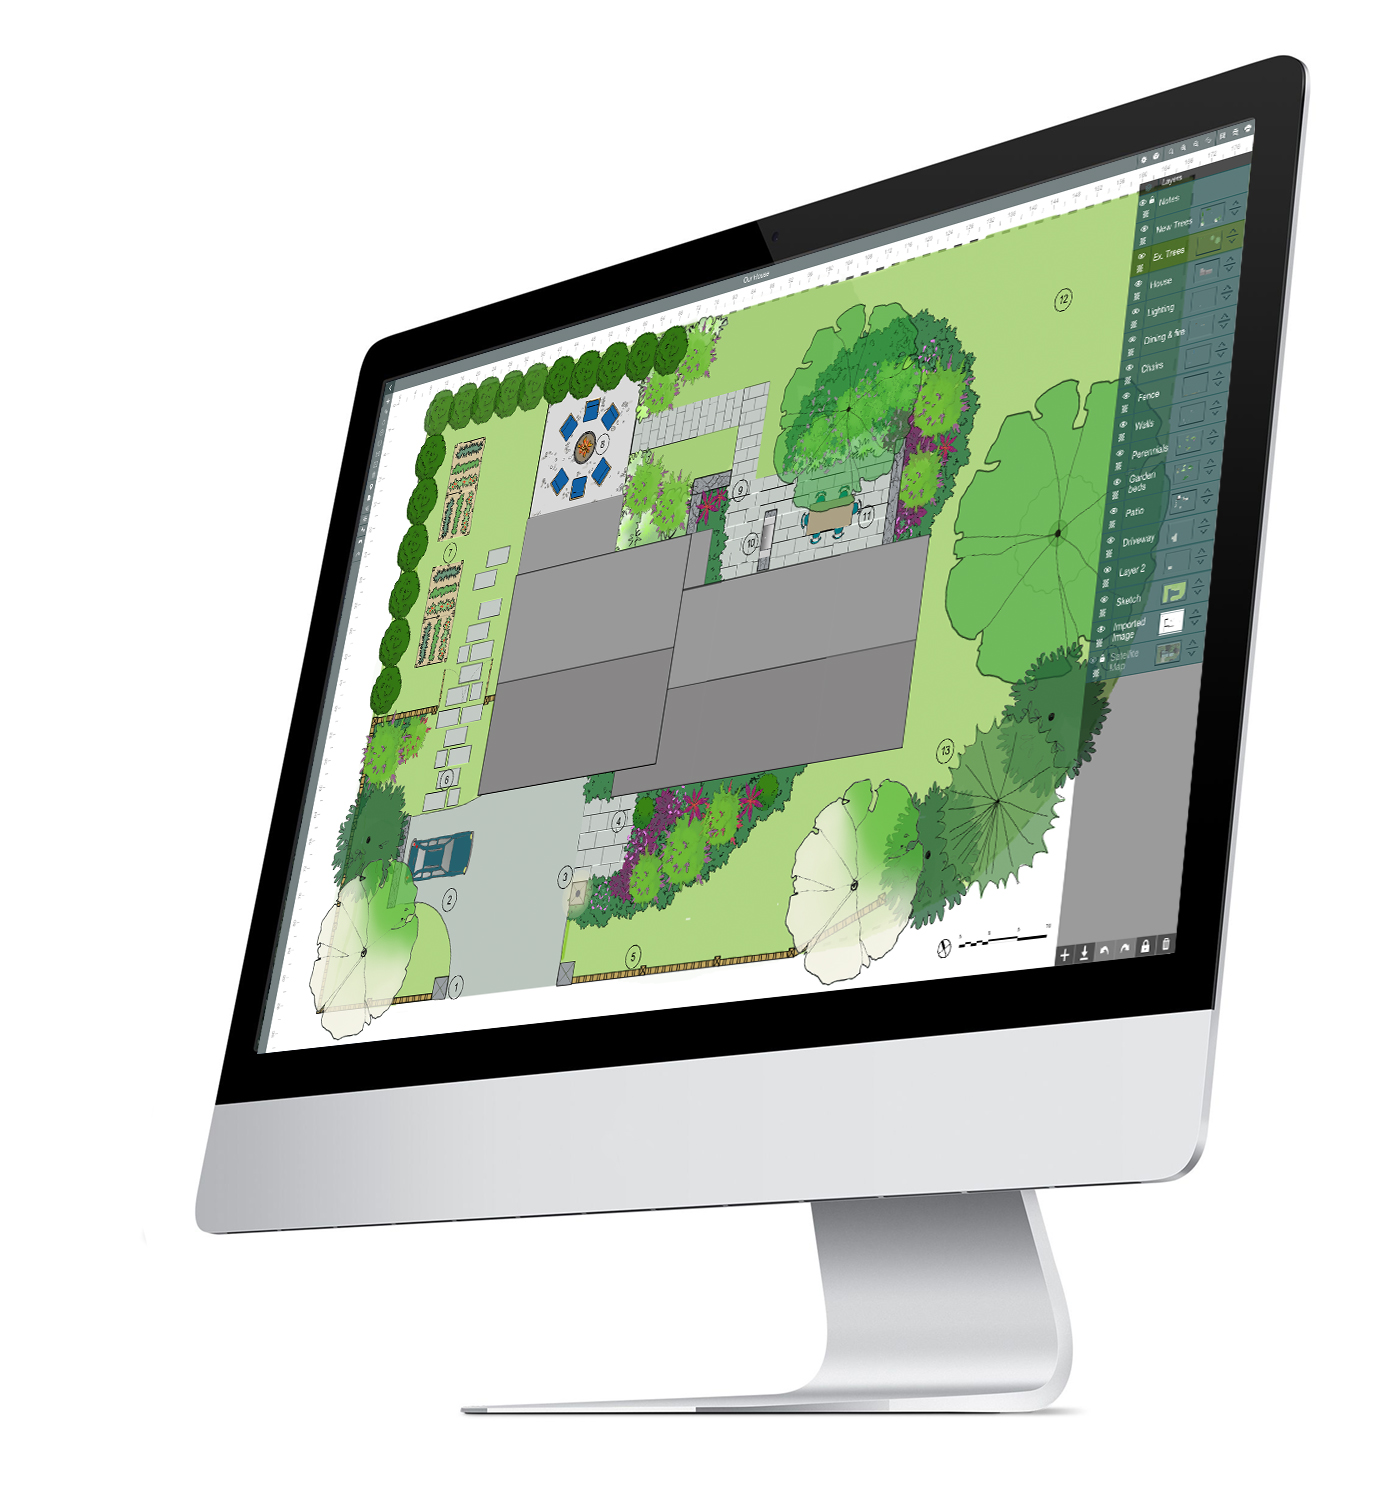 landscape software on Mac desktop computer